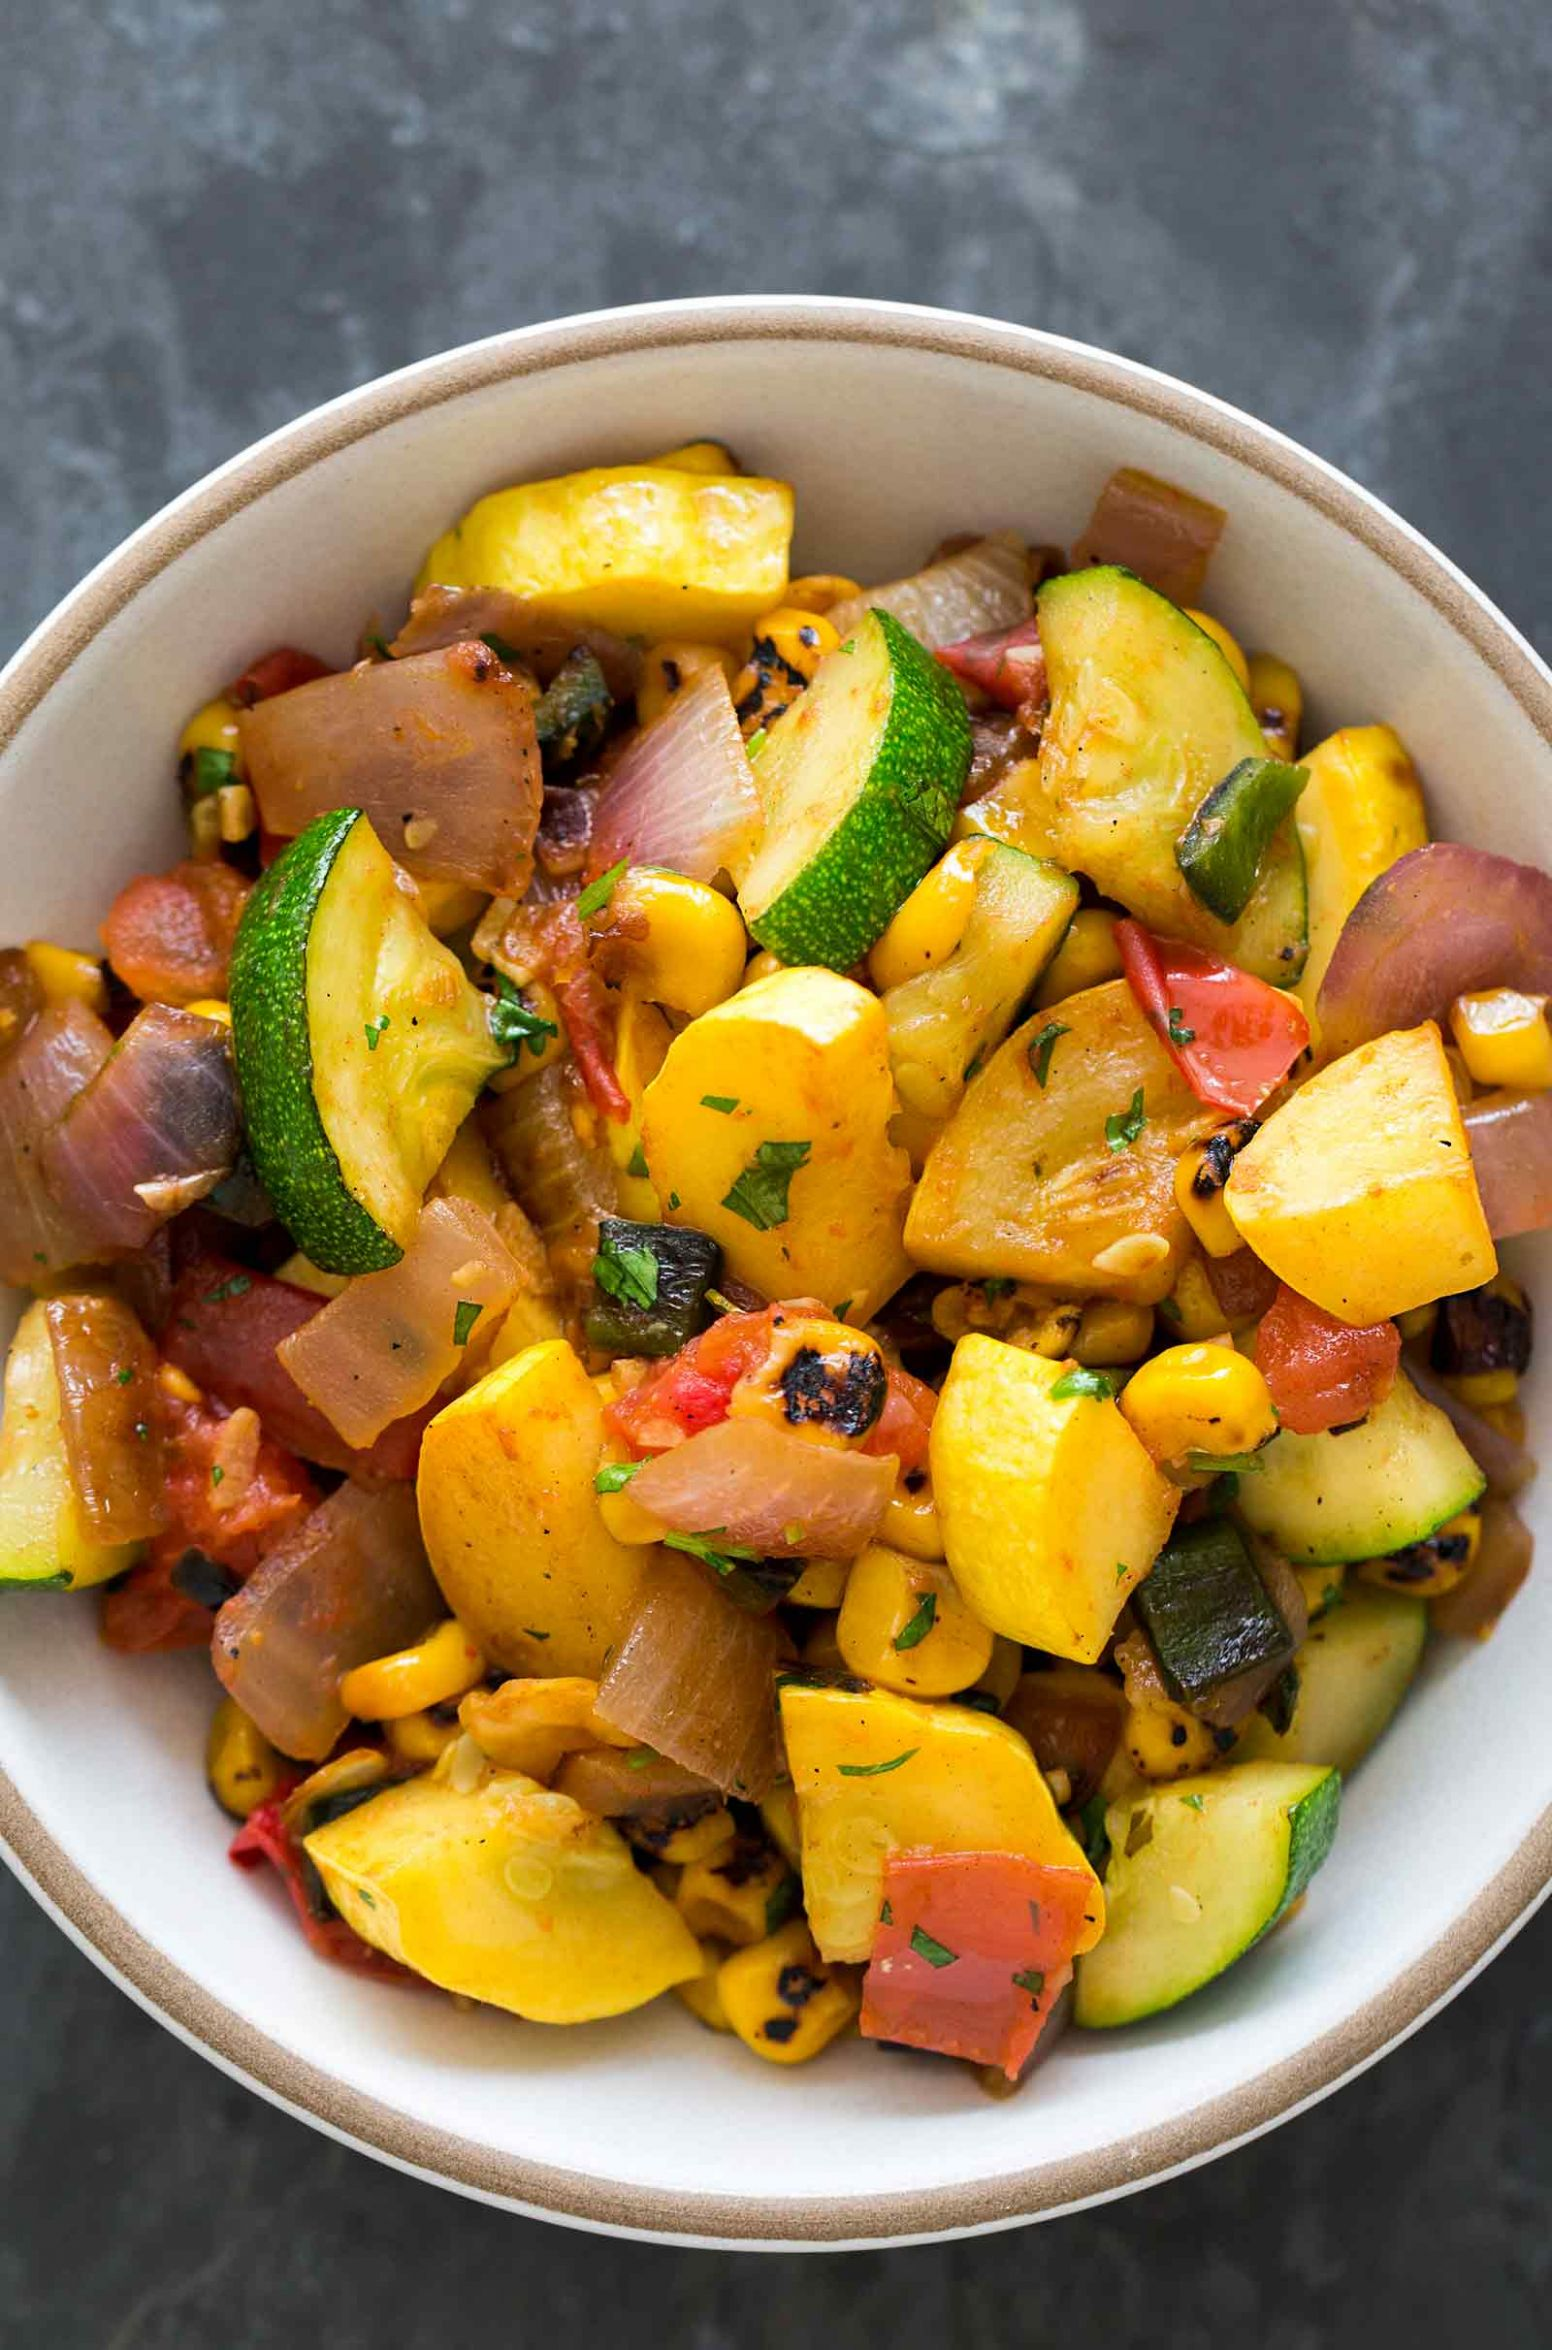 Summer Squash Green Chile Stir Fry - Recipes With Summer Squash